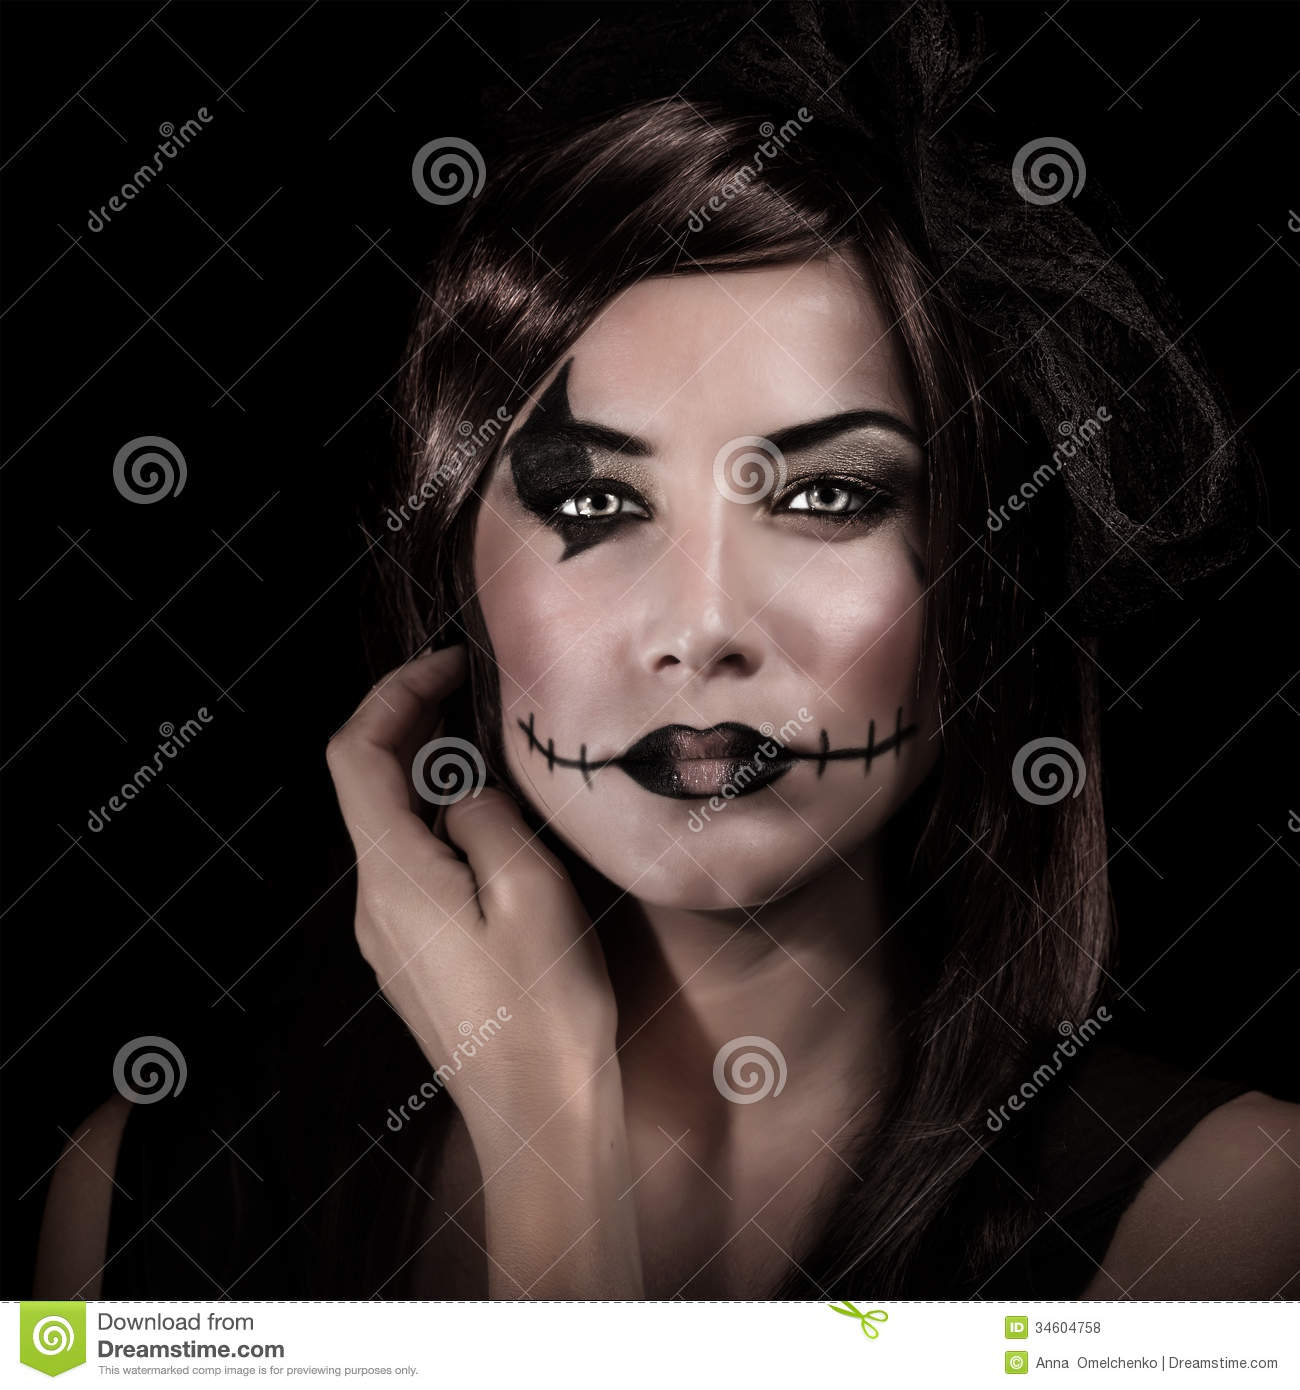 Related Keywords & Suggestions for Witch Halloween Costume Makeup